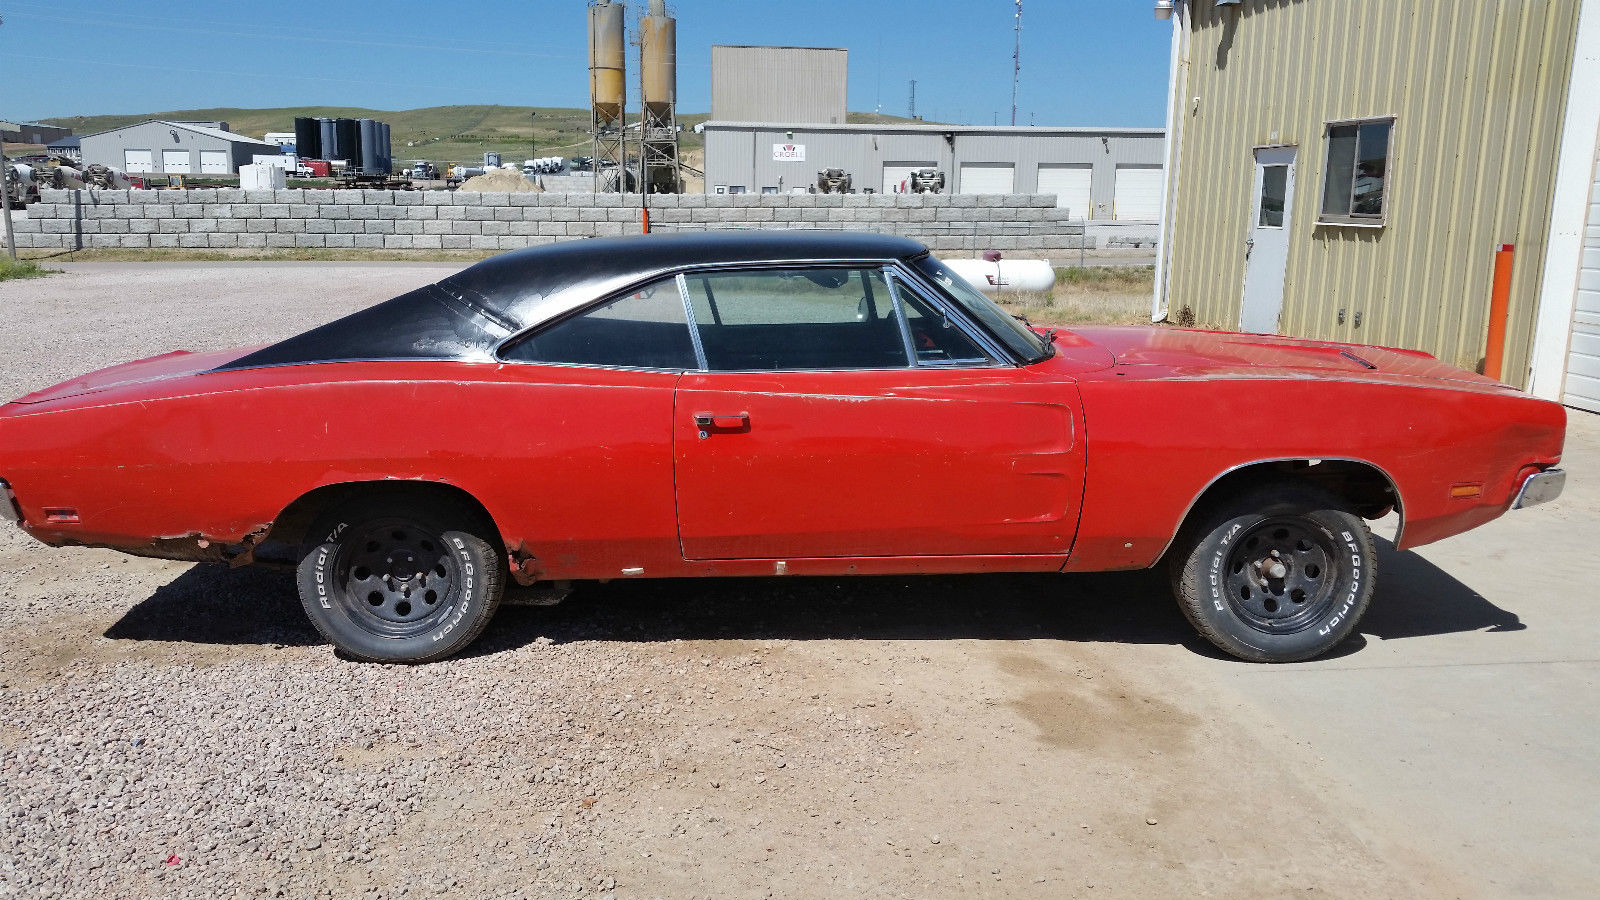 Theoretical Build This 1969 Dodge Charger Looks Like 1968 General Lee A Plucked Chicken But Its Got